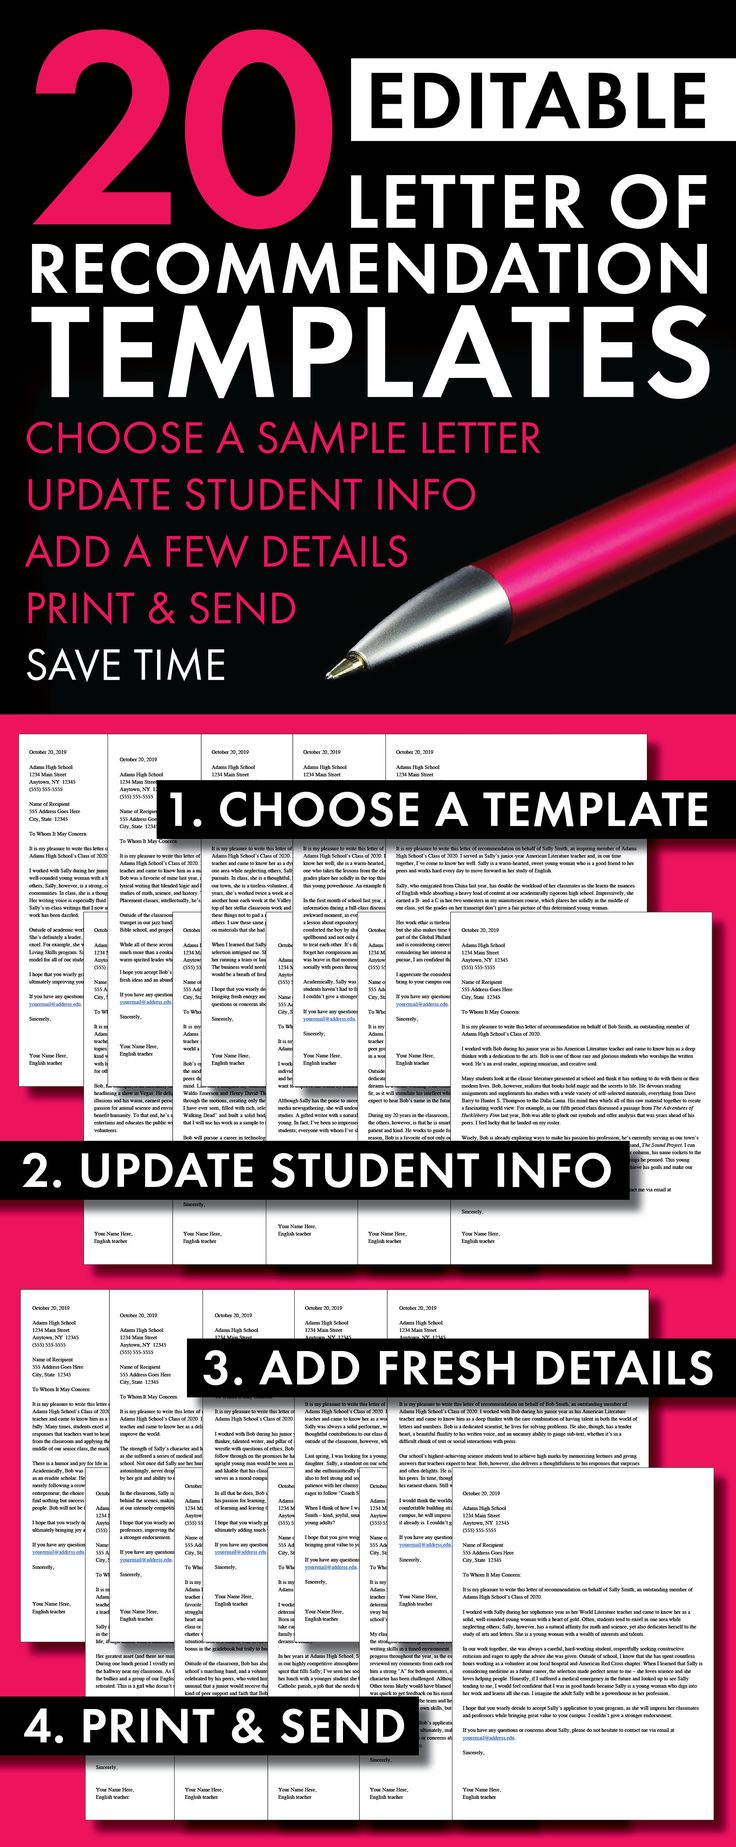 College Essay Services College Application Letters Of Recommendation Templates High School  Teachers Save Time With This Set Customessays also Literary Analysis Essay On The Cask Of Amontillado  Best High School English Images On Pinterest Argumentative Essay Outline